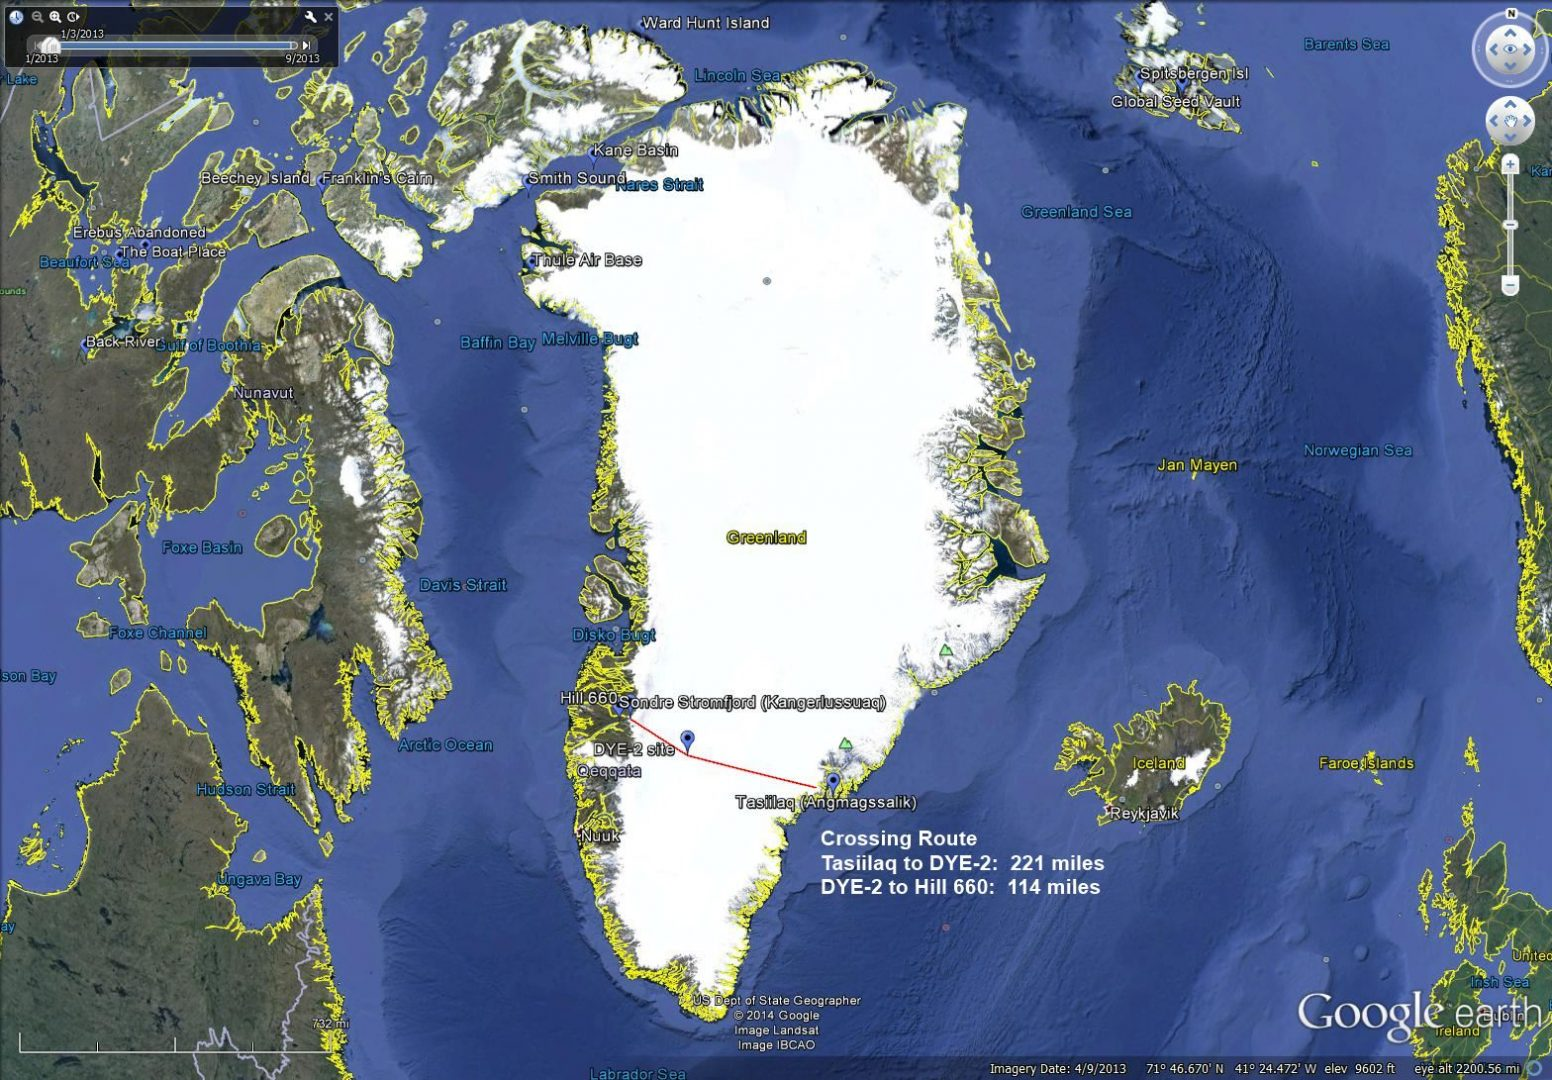 Greenland Crossing Route